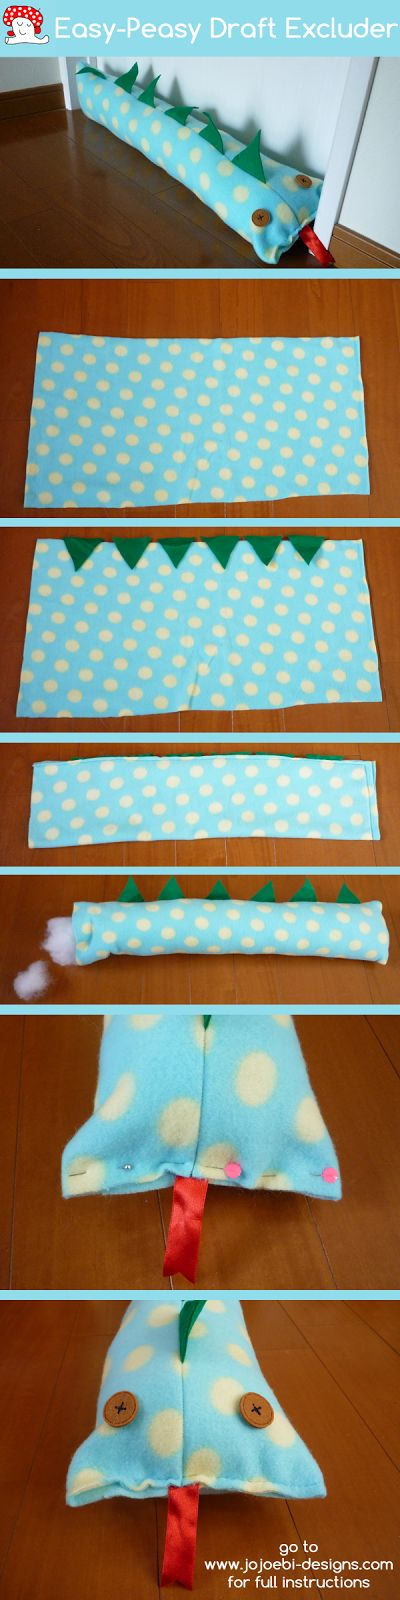 Easy Draft Excluder Tutorial - Suitable For Beginners And Kids!